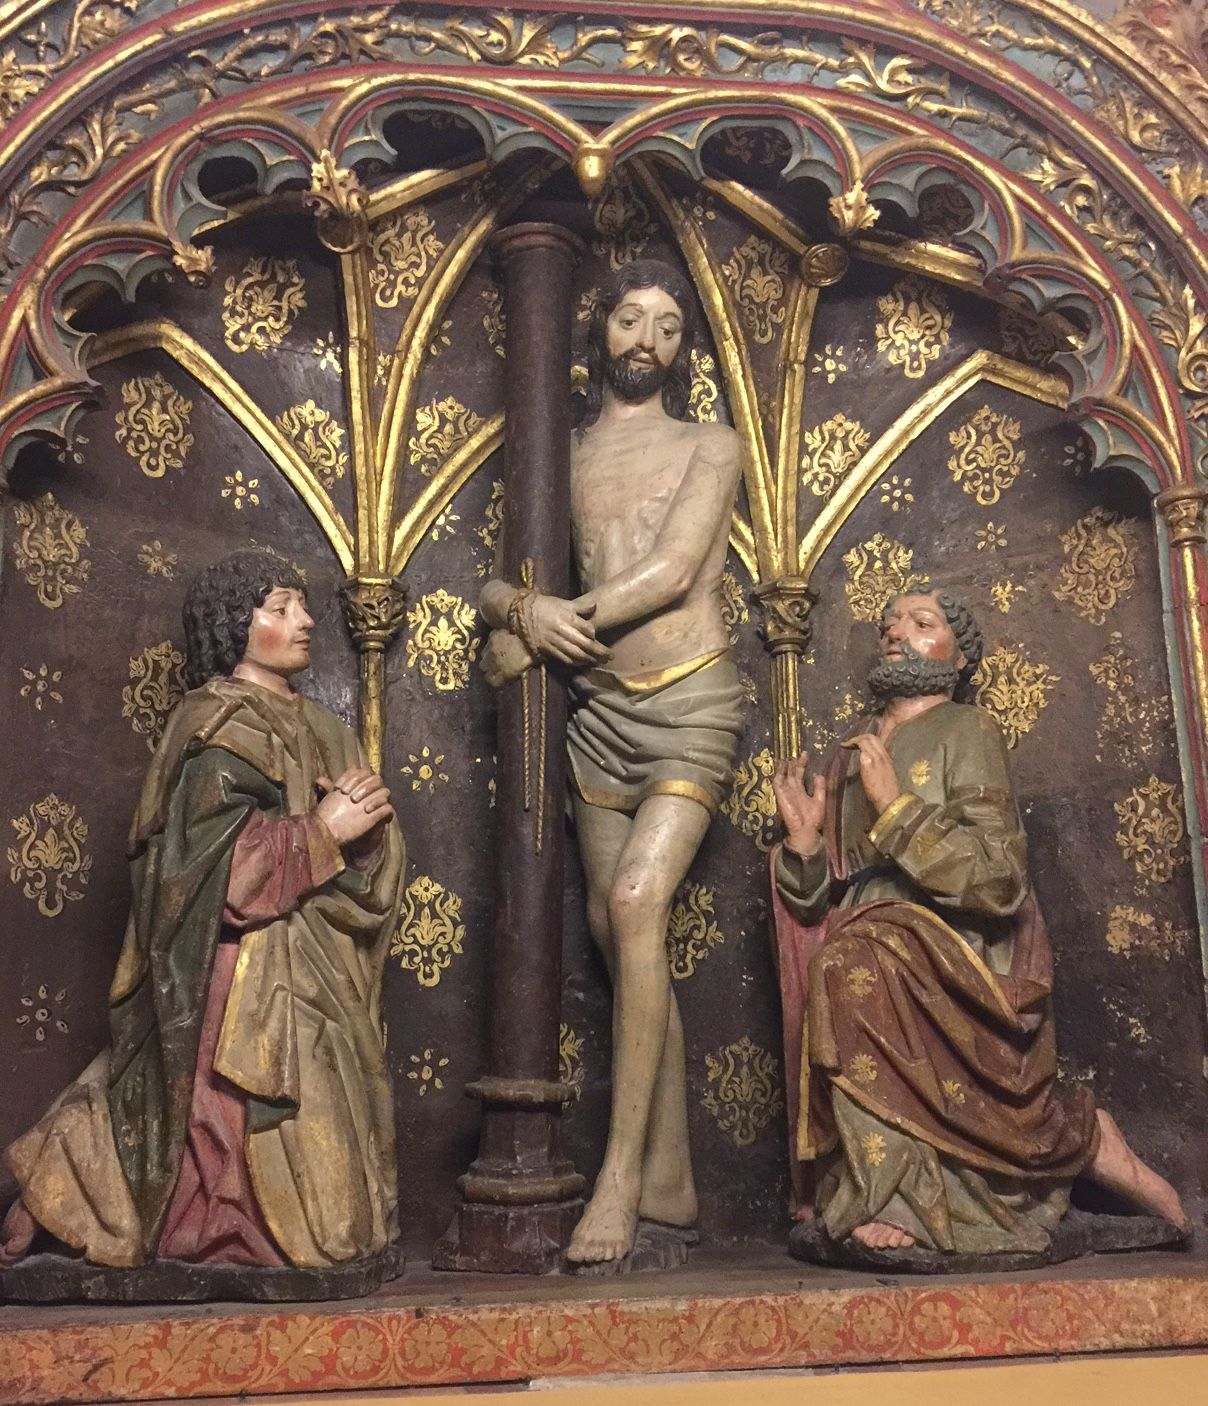 Toledo Cathedral (Spain, 12/16)